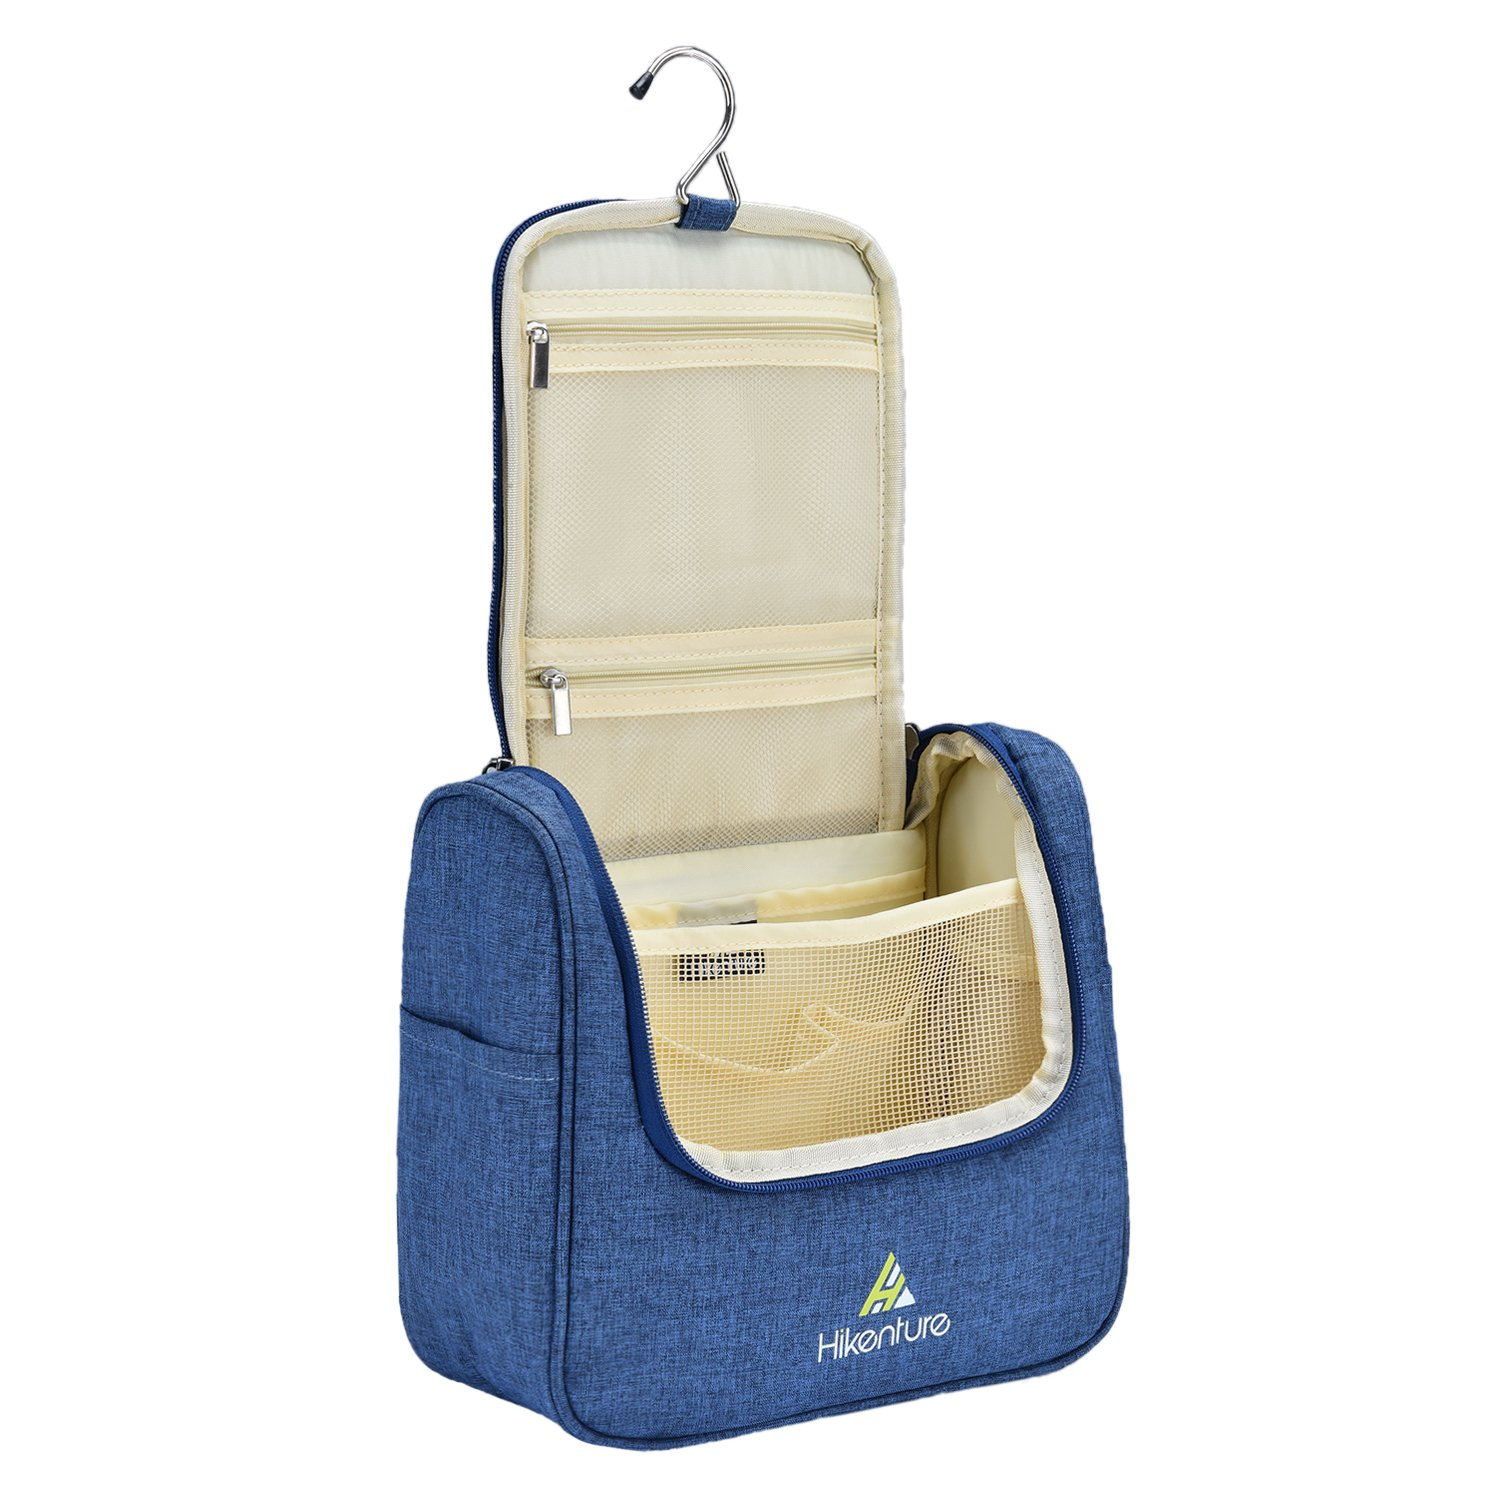 9bd7c4ccc61a Amazon.com   Travel Hanging Toiletry Bag by Hikenture